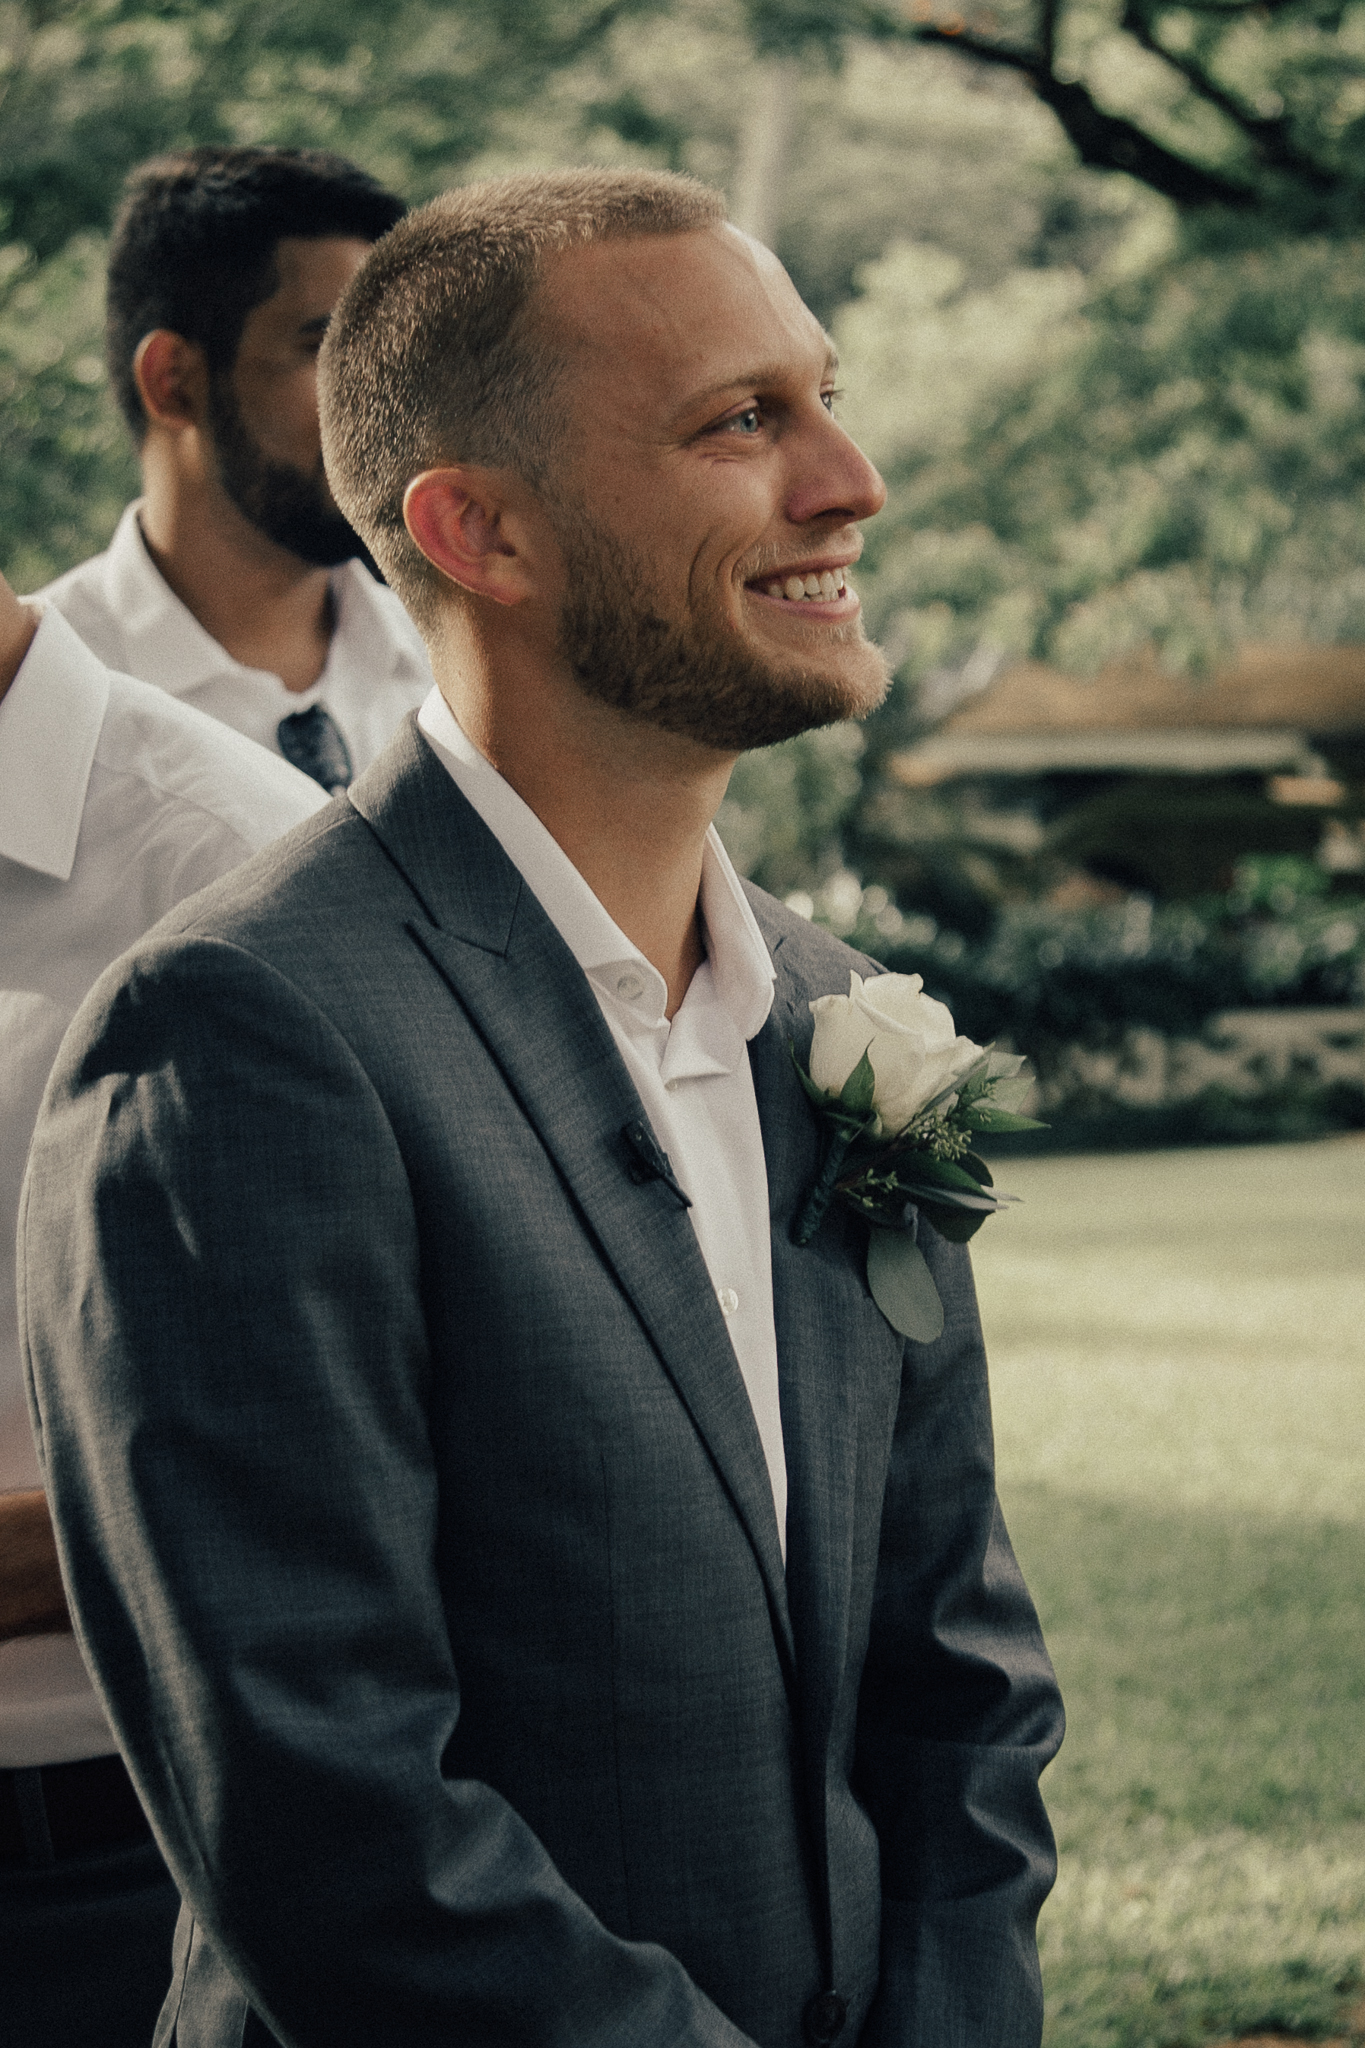 Groom's Reaction